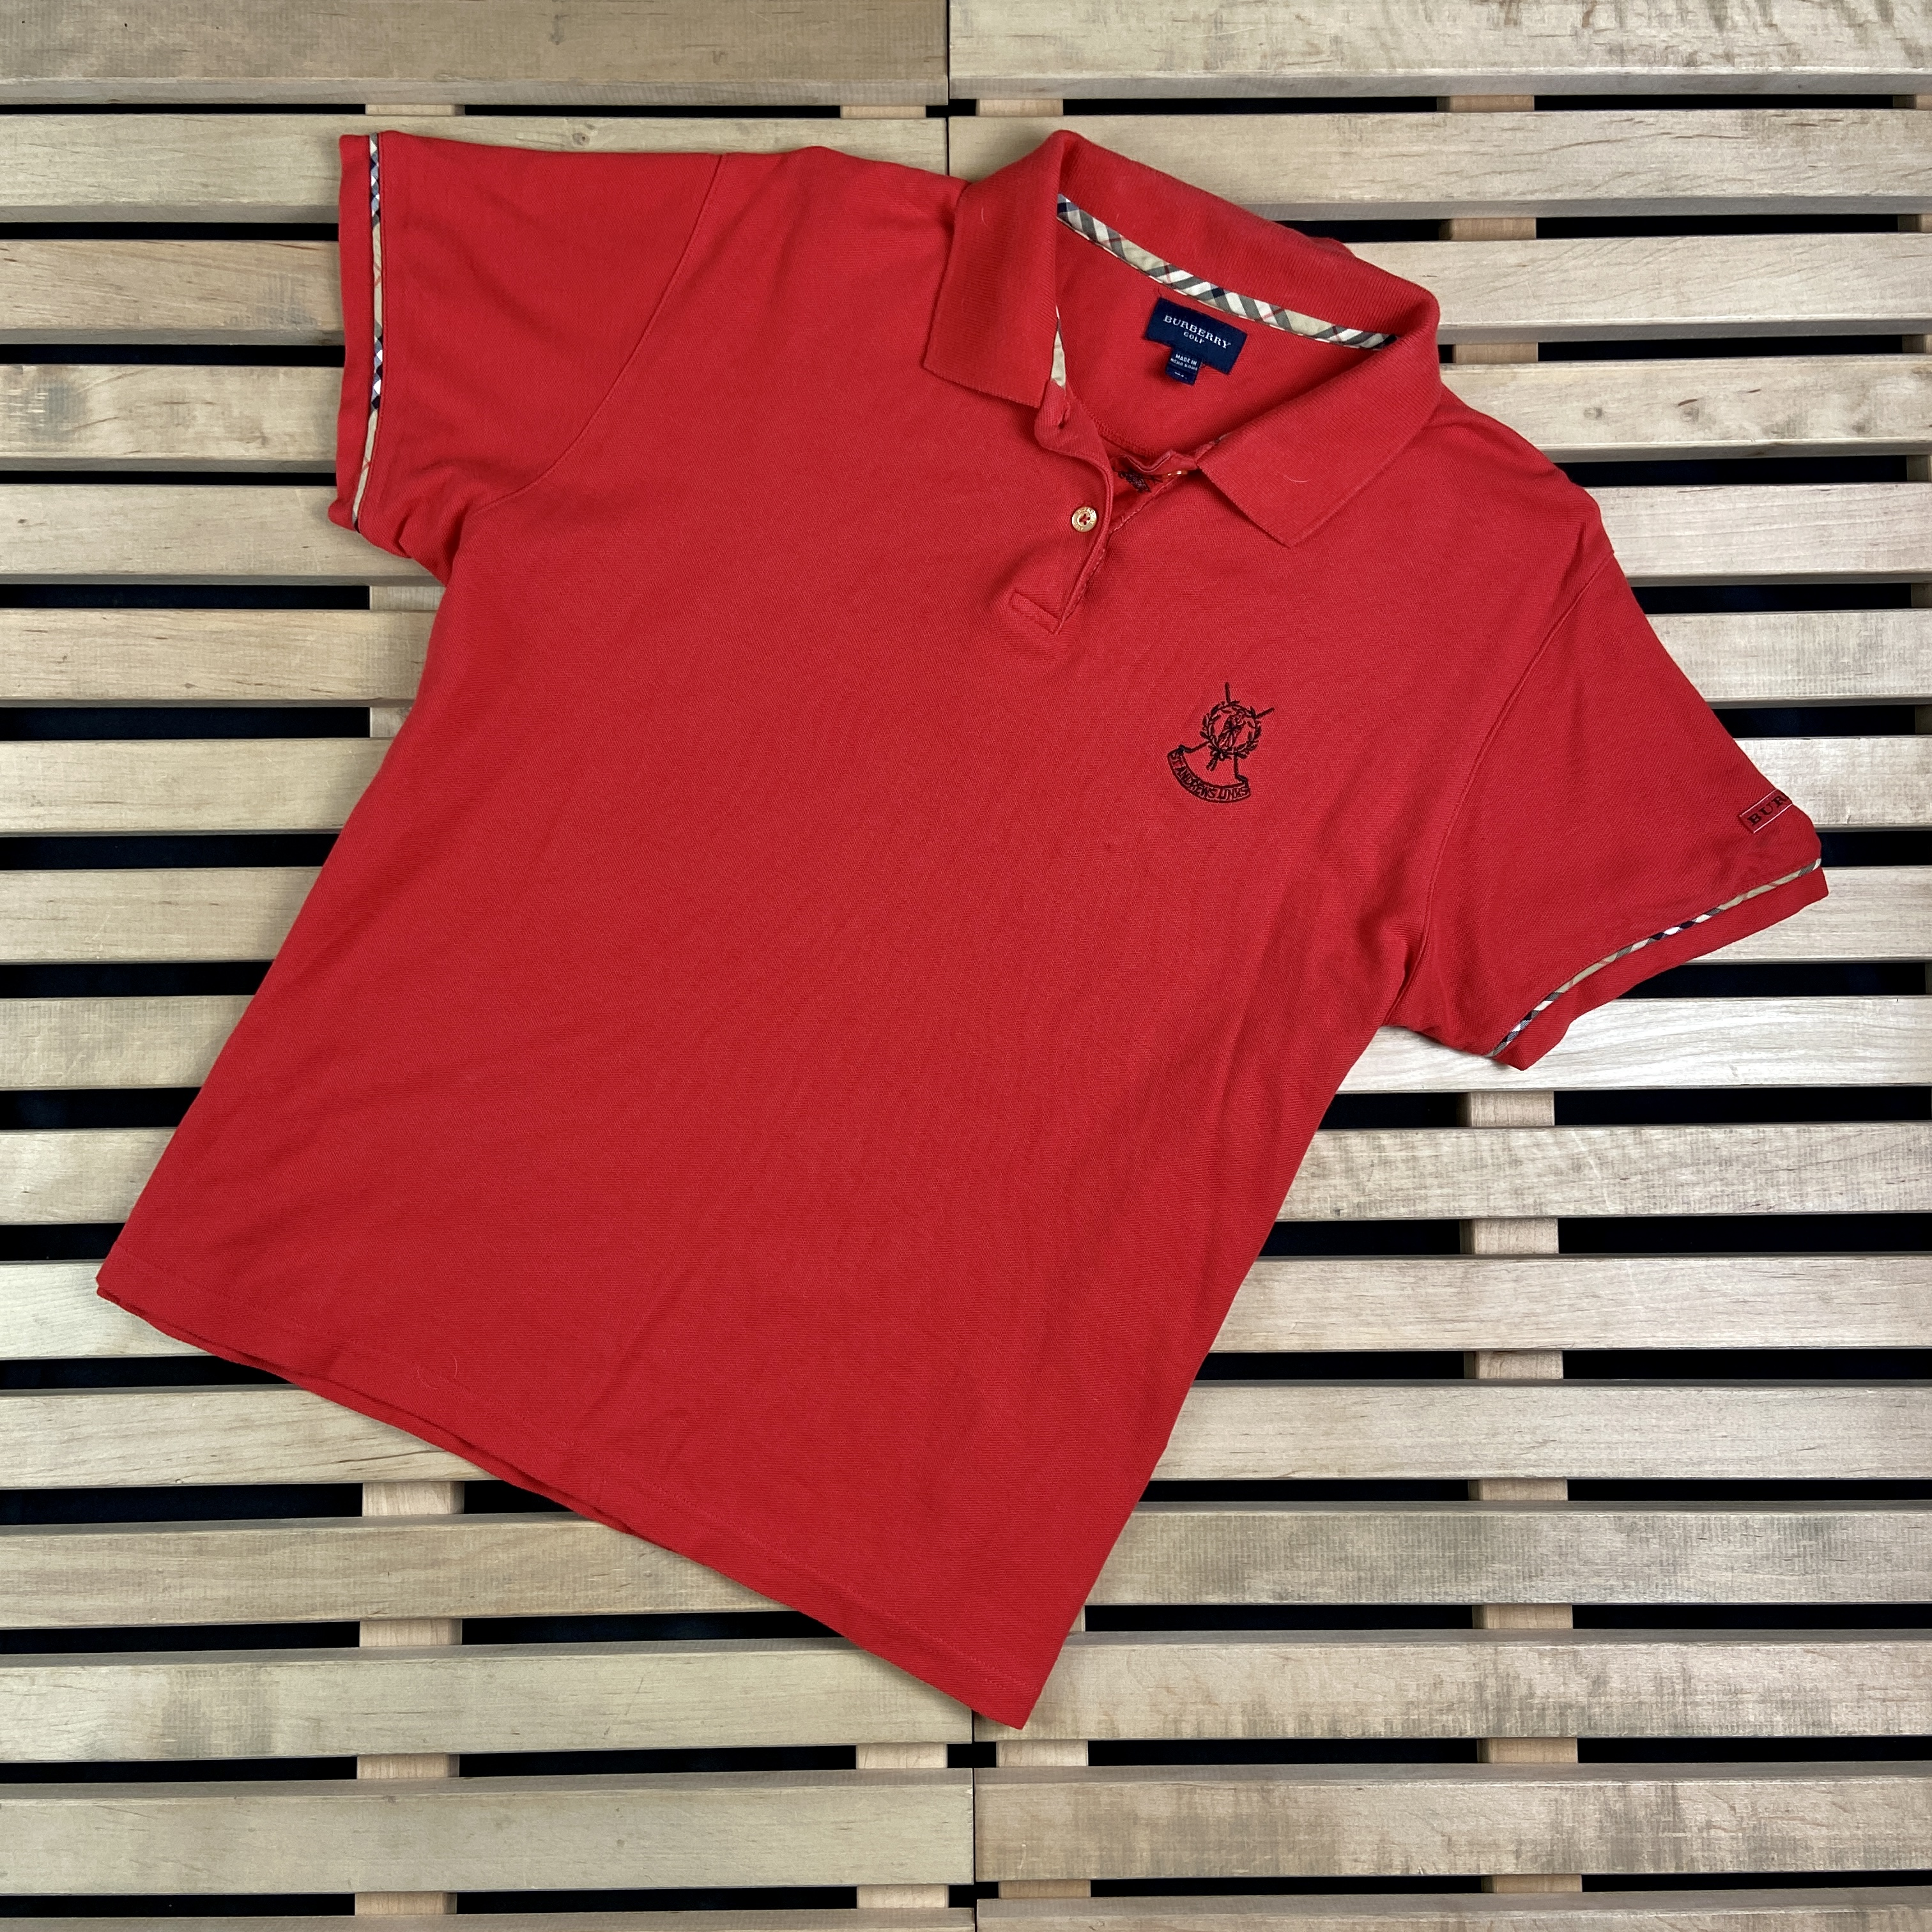 Burberry Mens Polo T Shirt Burberry Golf Size XL Red